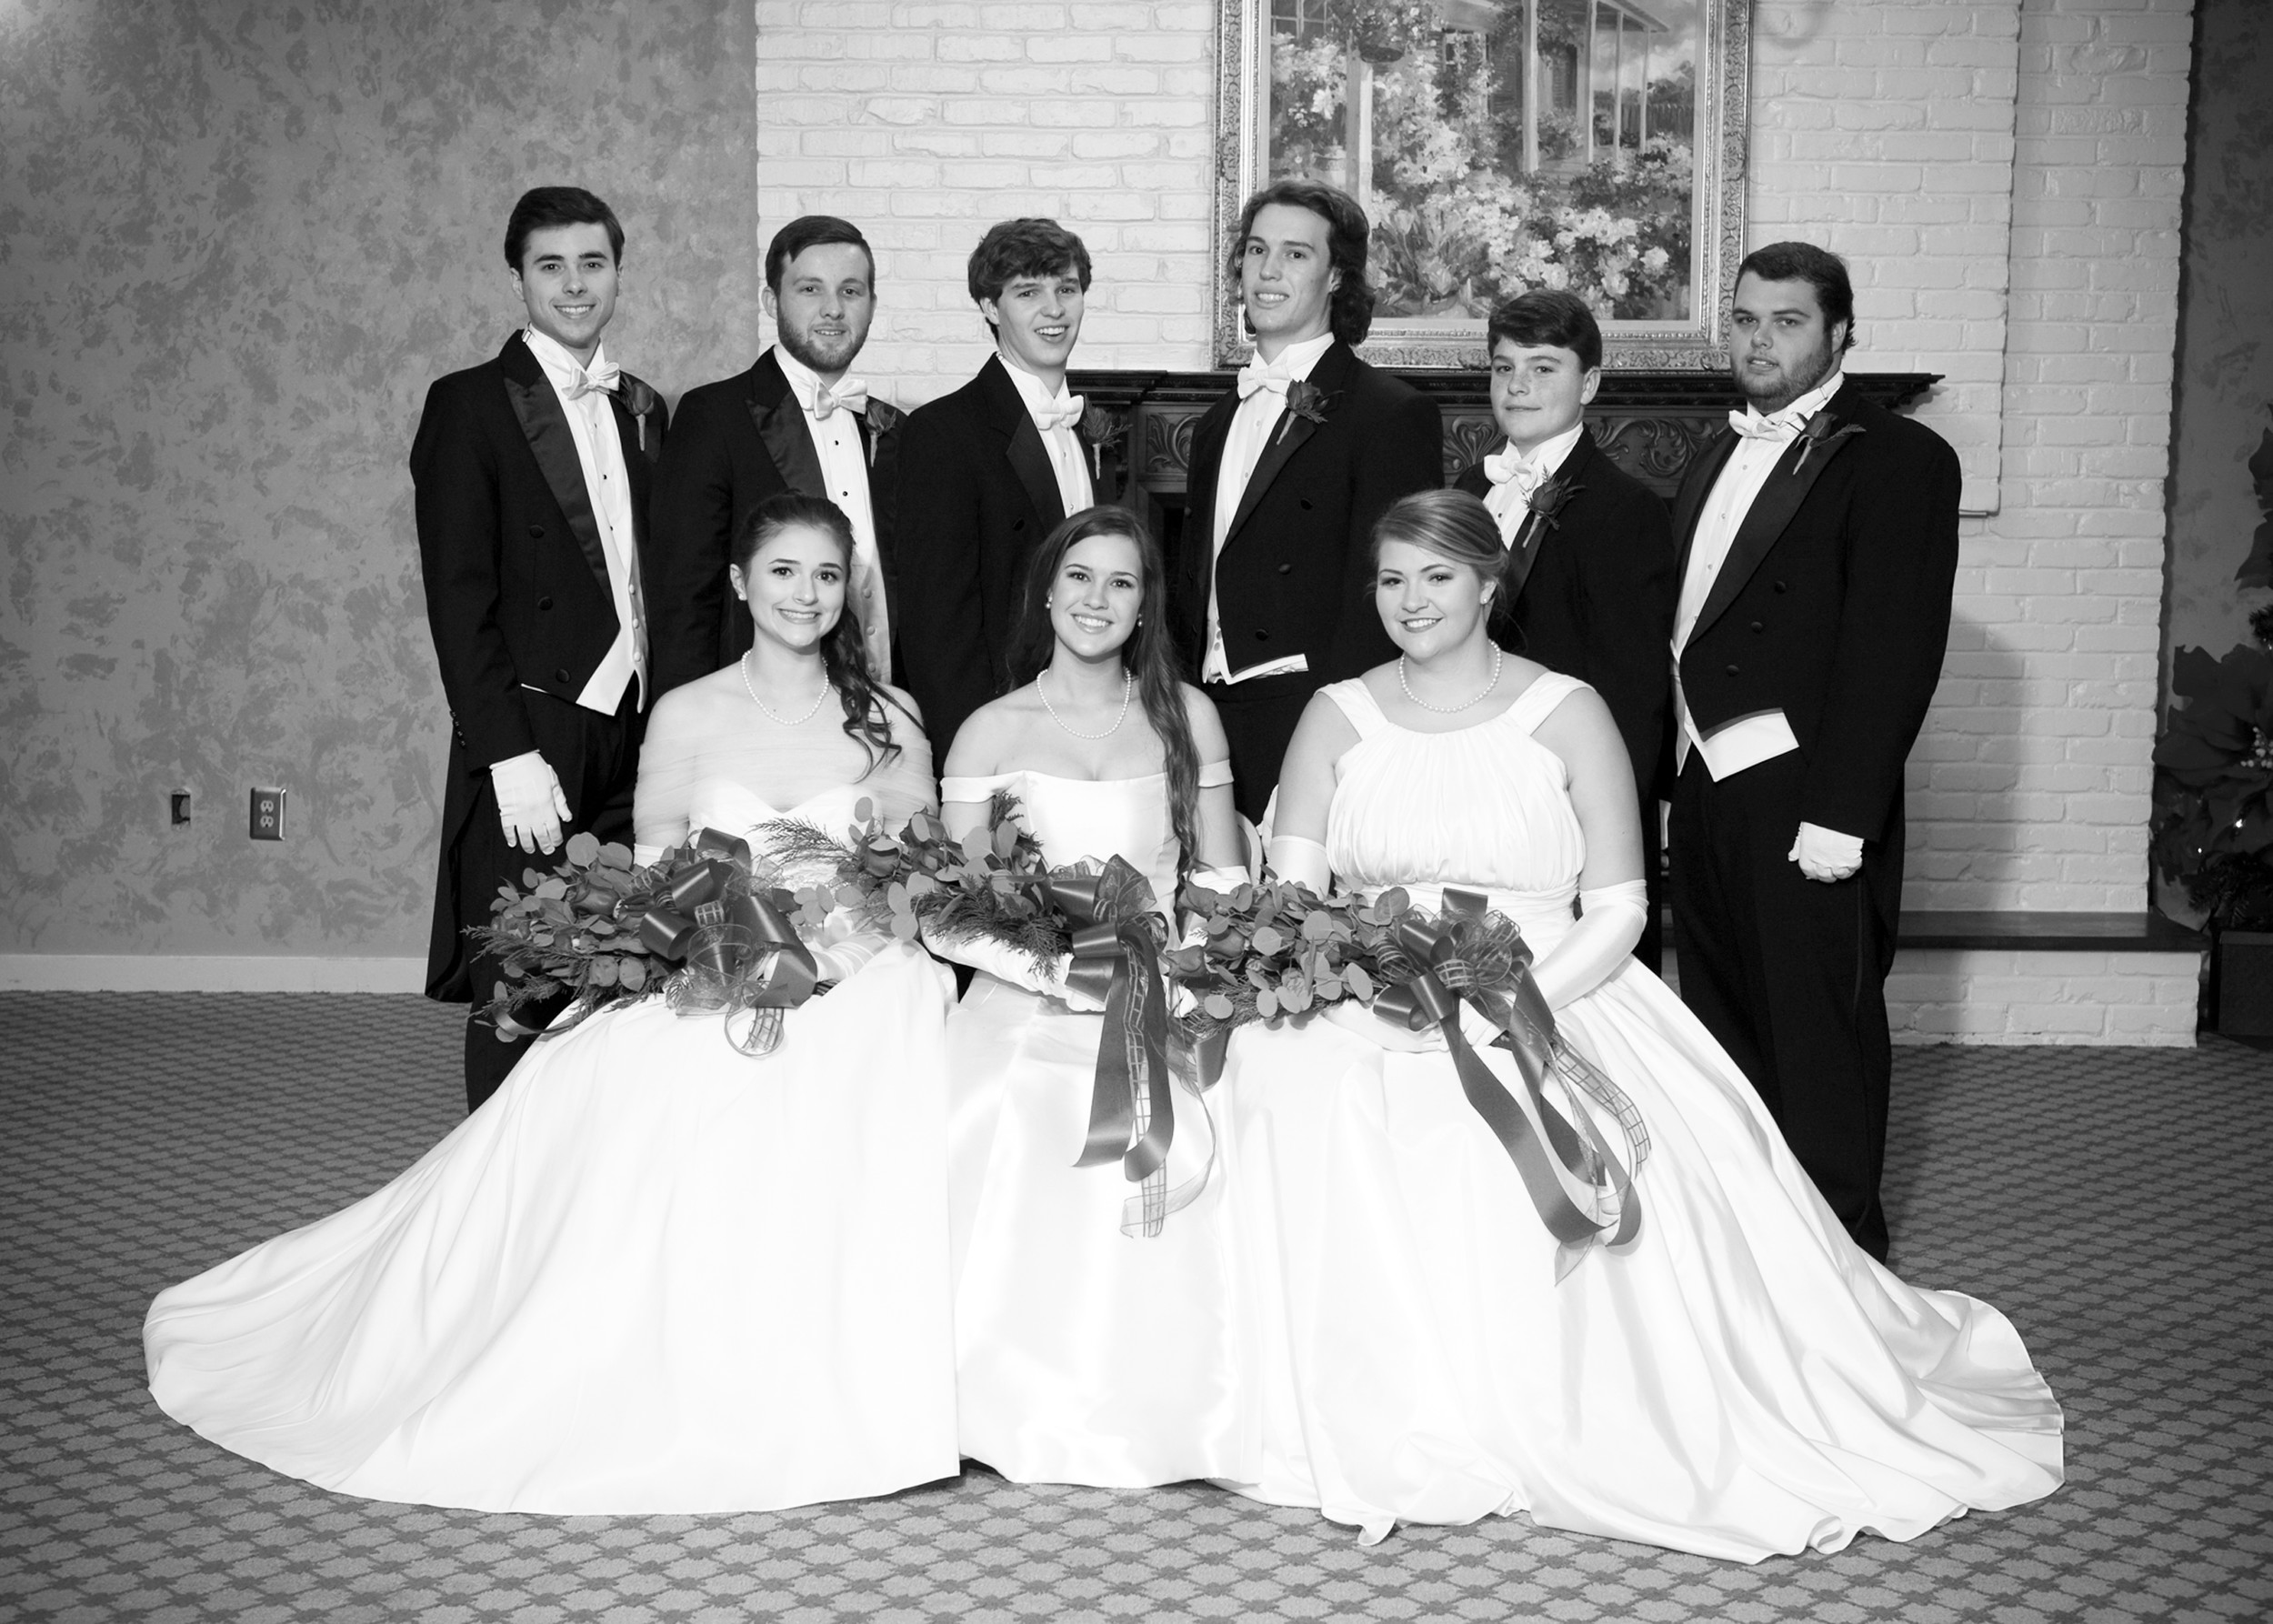 From left: front row, debutantes Callie Elizabeth Graham, Caroline Elizabeth Land and Olivia Dean Wilson; and back row, escorts John William Graham, Tyler Logan Sprott, William Anders Land, James Ceth Land, John Joe Wilson III and Raymond Bradley Davis. One son was presented, James Ceth Land.